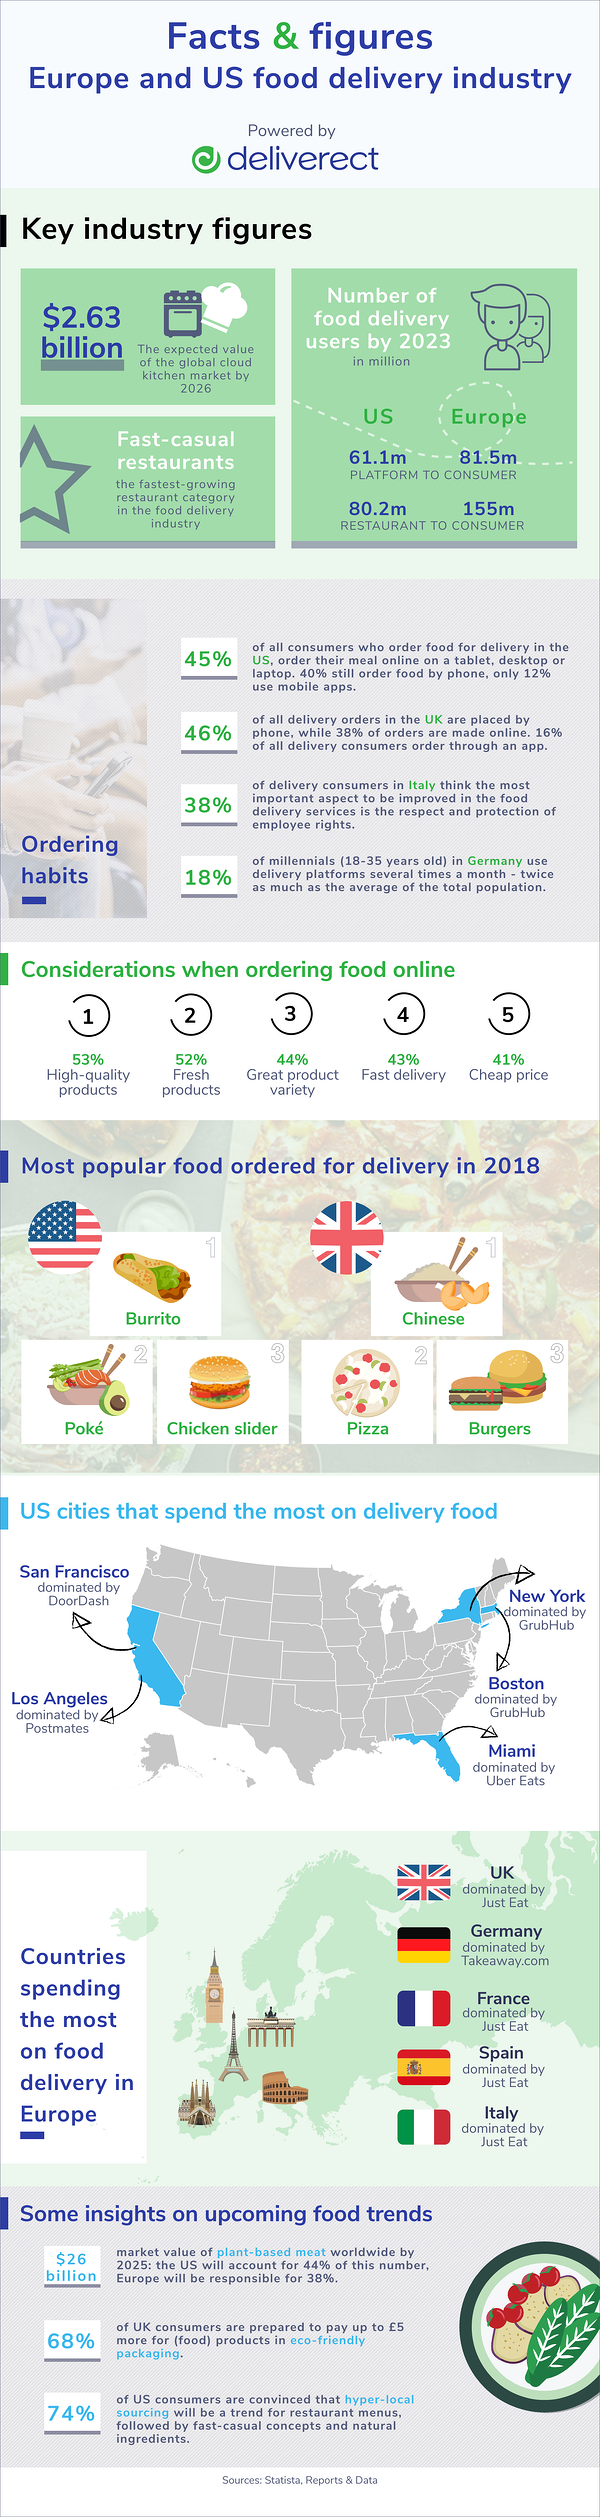 Infographic on food delivery in the US and Europe